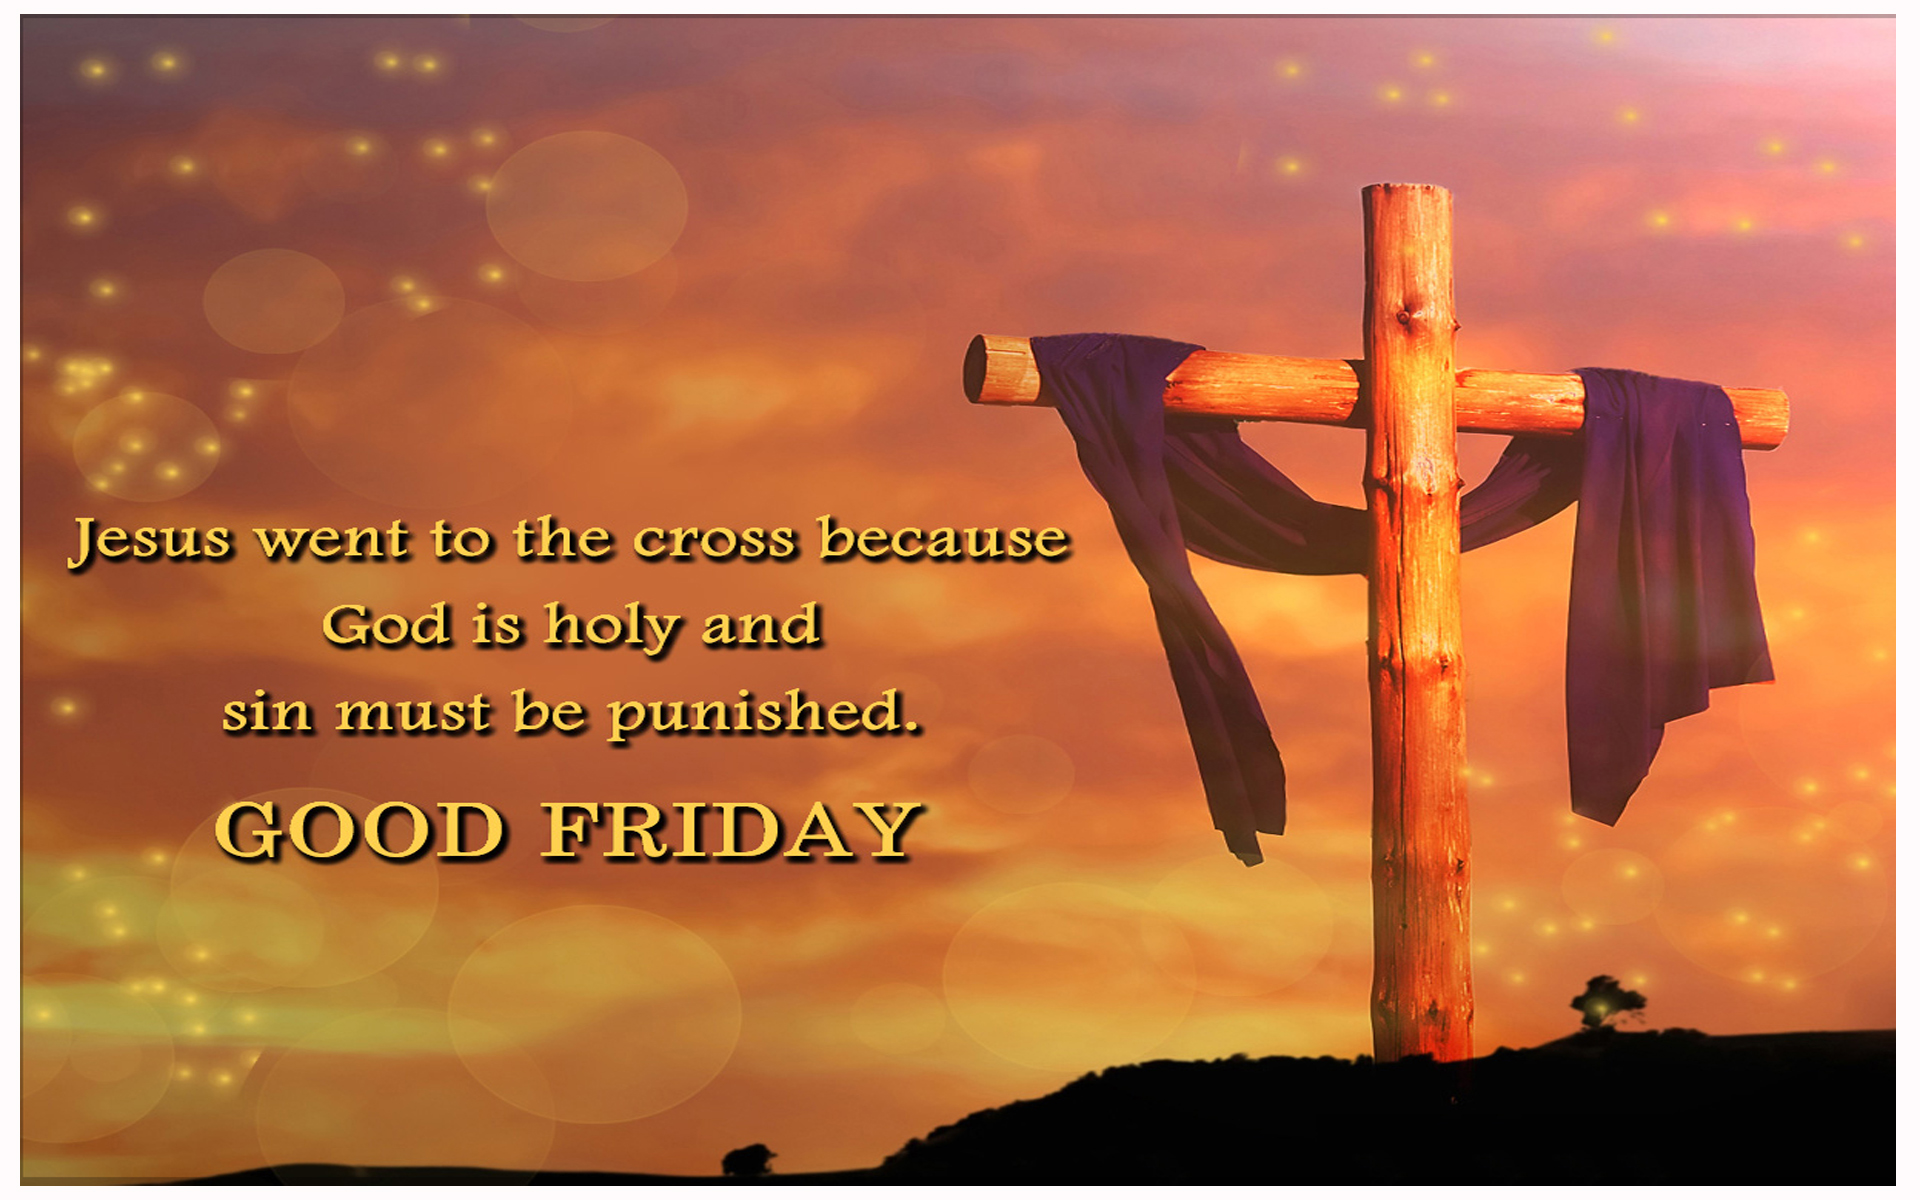 Good Friday Hd Images Wallpapers Free Download Techicy